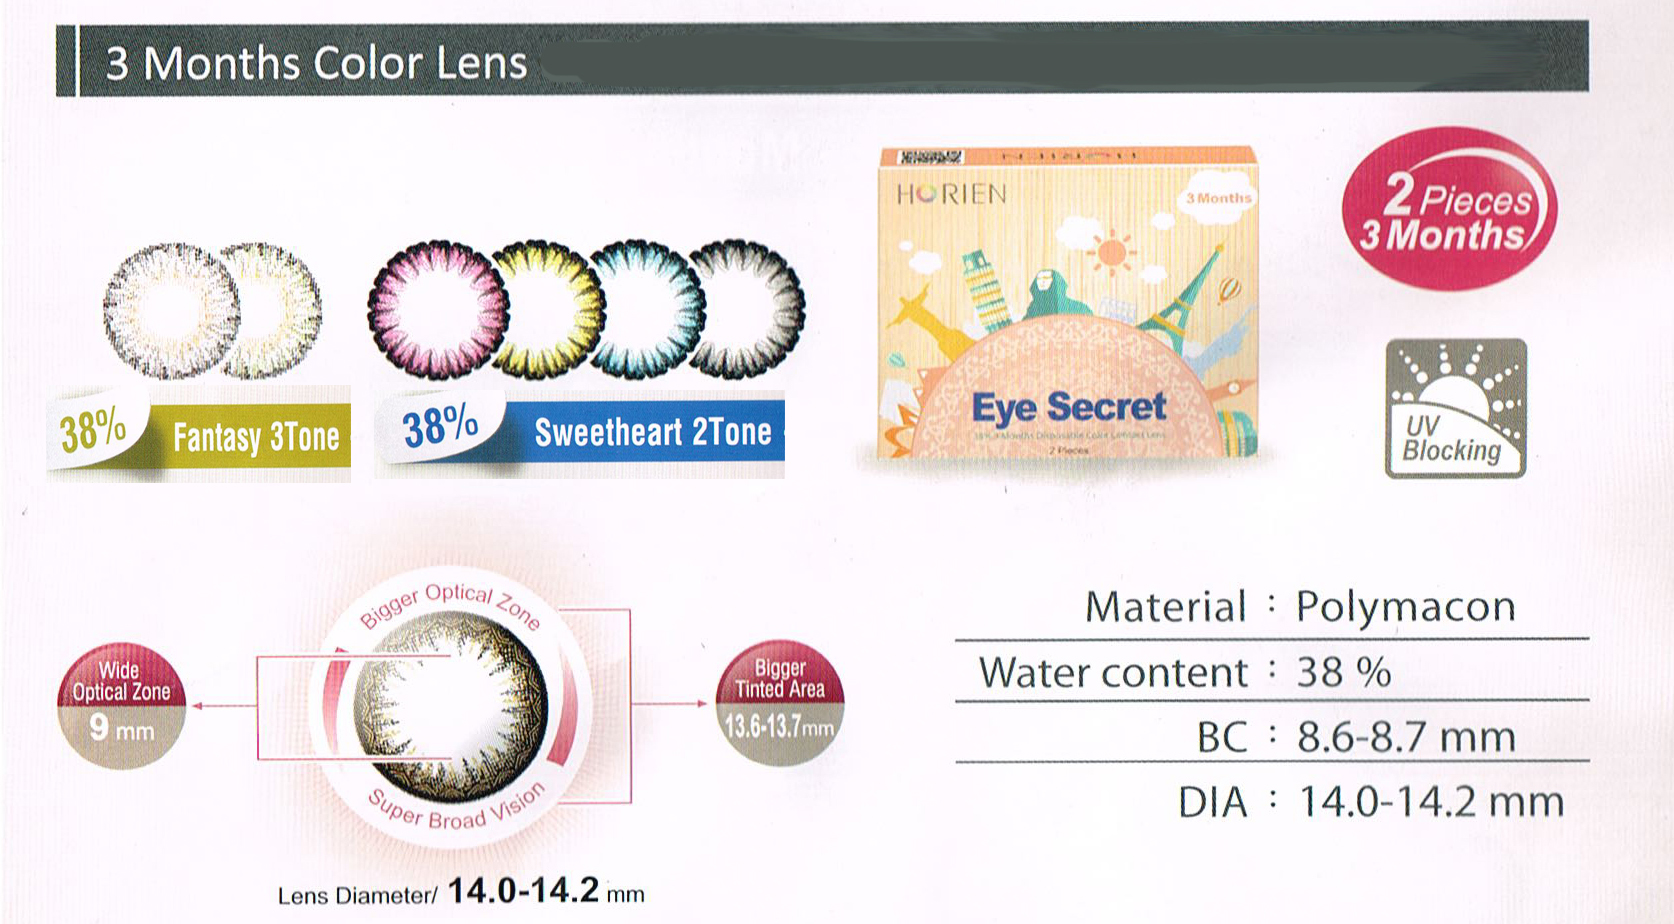 Horien eye secret 3 months contact lens my contactlens color chart nvjuhfo Image collections